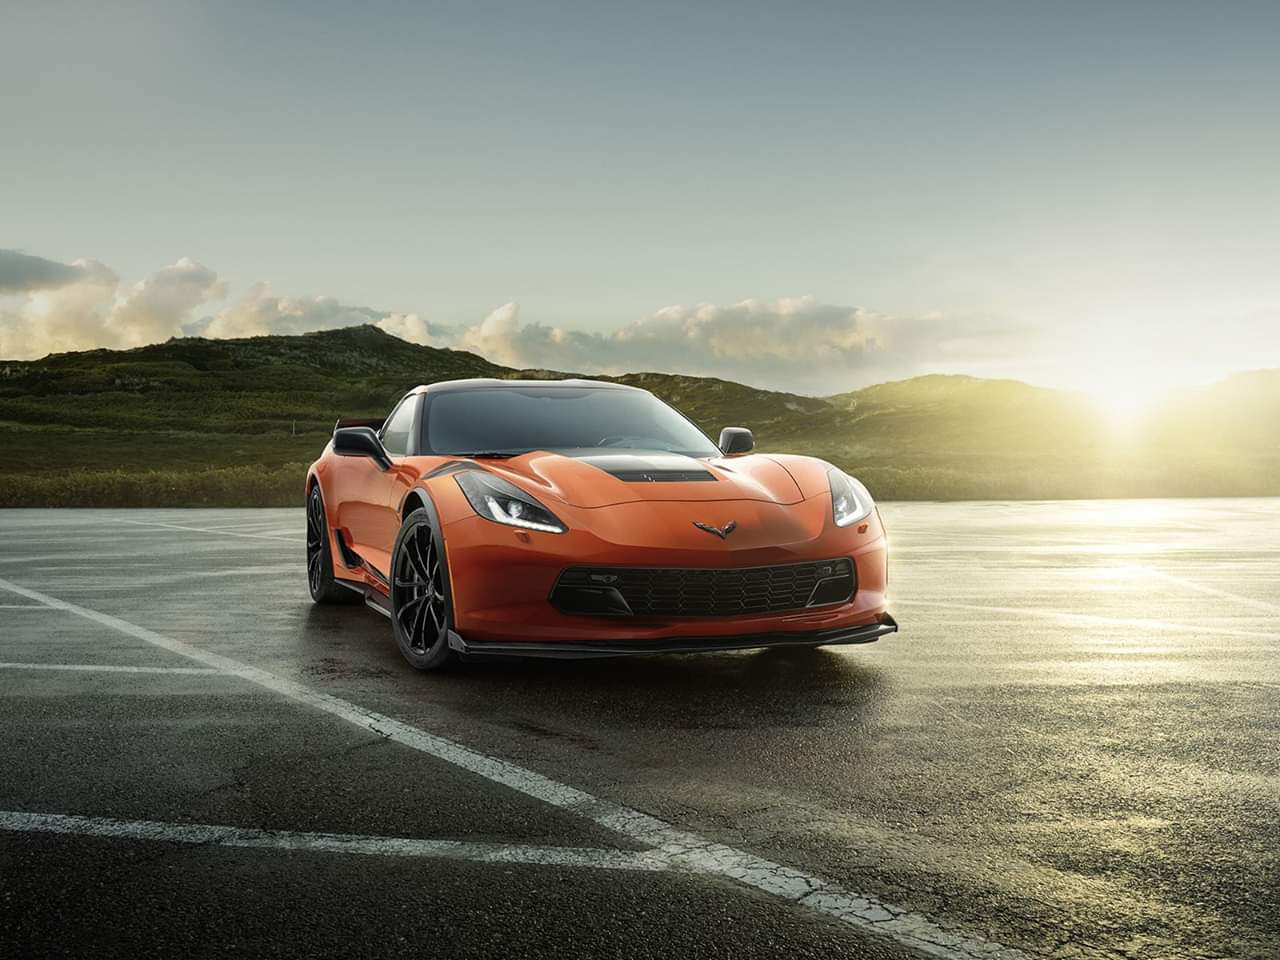 Canto del cigno per la Corvette C7. Ecco la Grand Sport Final Edition